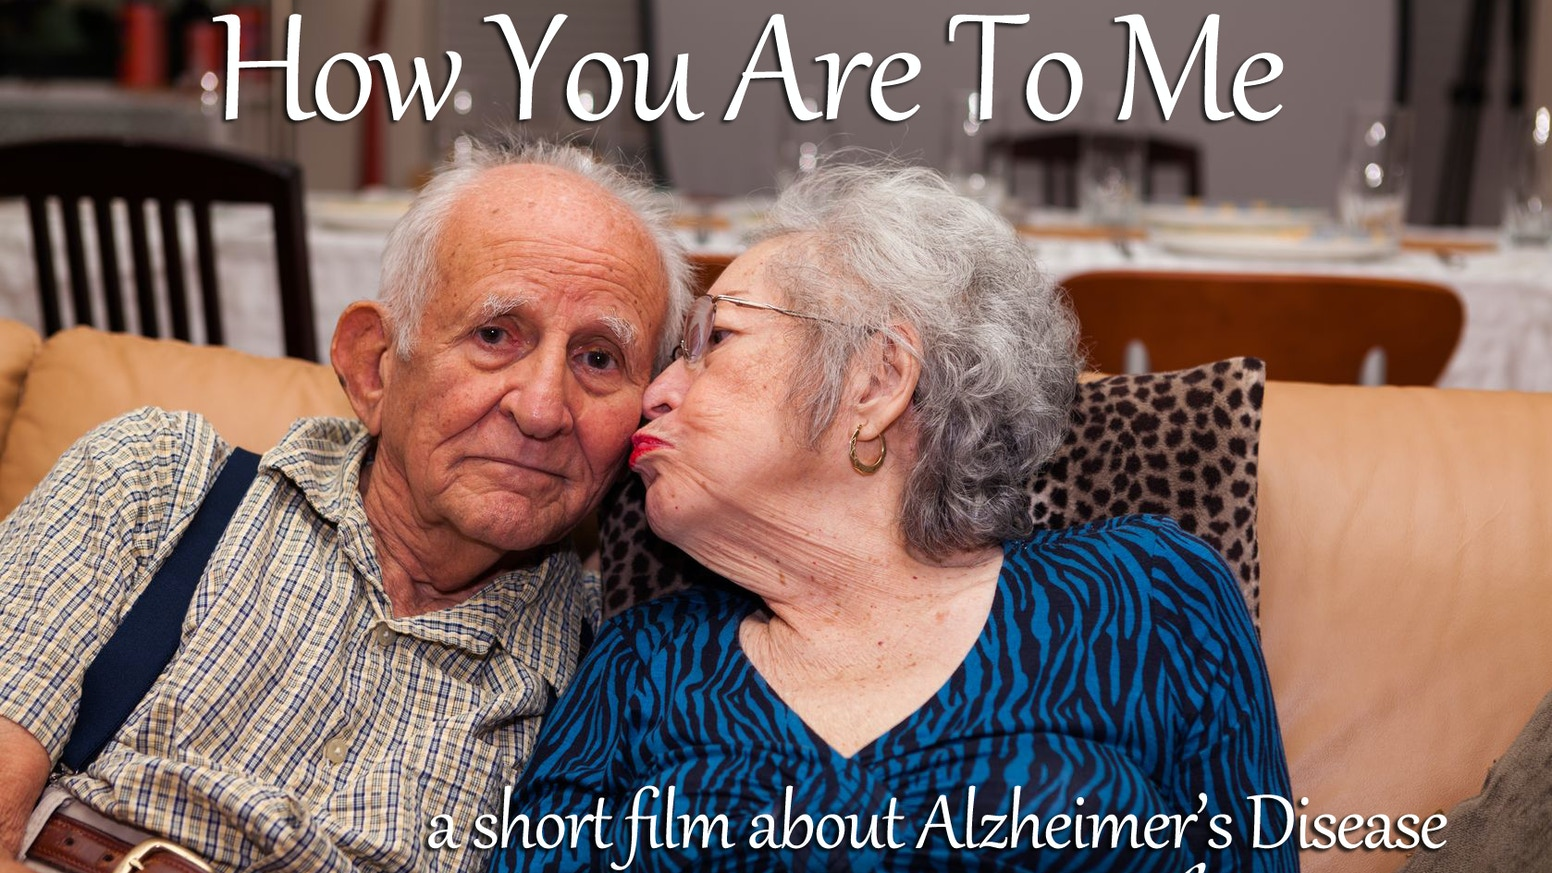 A short film shedding light on the ups, downs, joys, and difficulties of caring for a loved one with Alzheimer's disease.